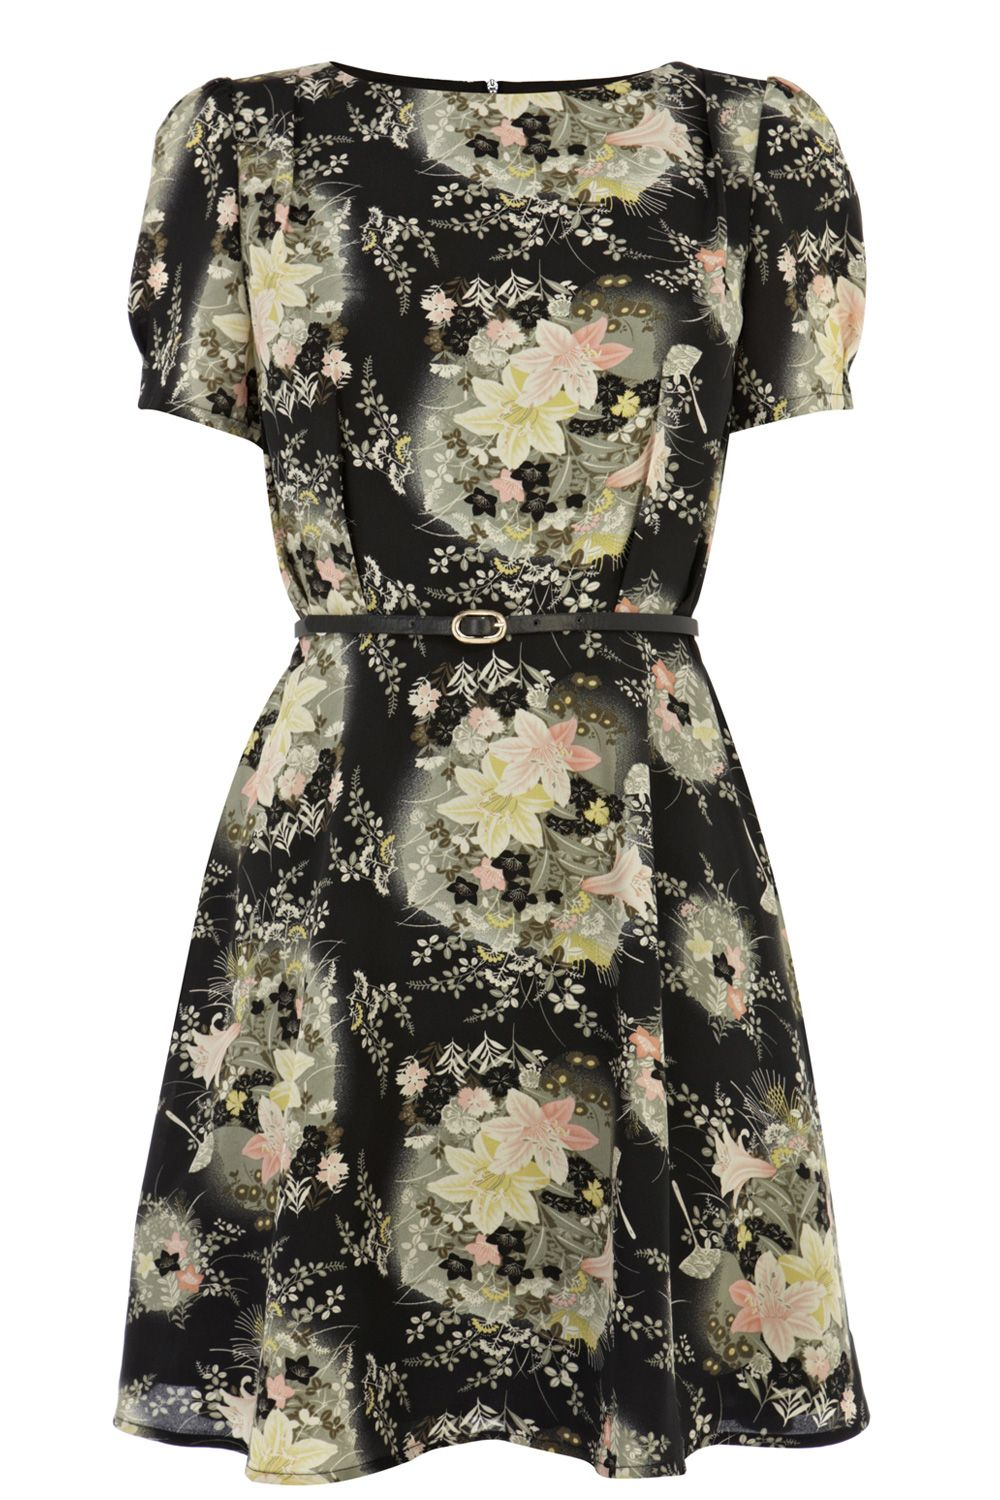 Oriental fan flower dress